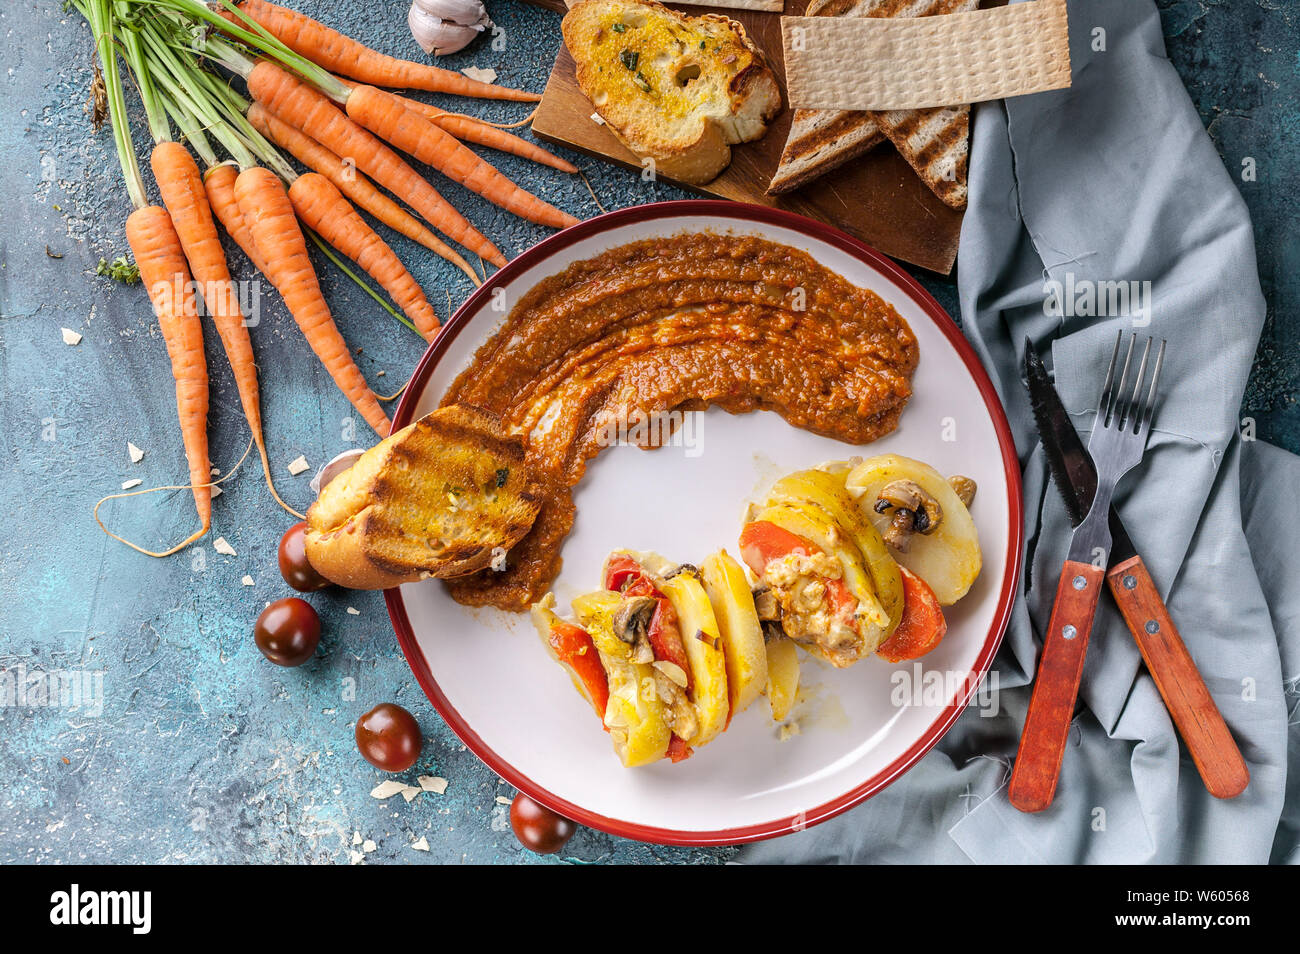 Vegetarian food. Stewed potatoes with zucchini, carrots, mushrooms and cheese. Carrot mash with champignons. Top view Stock Photo